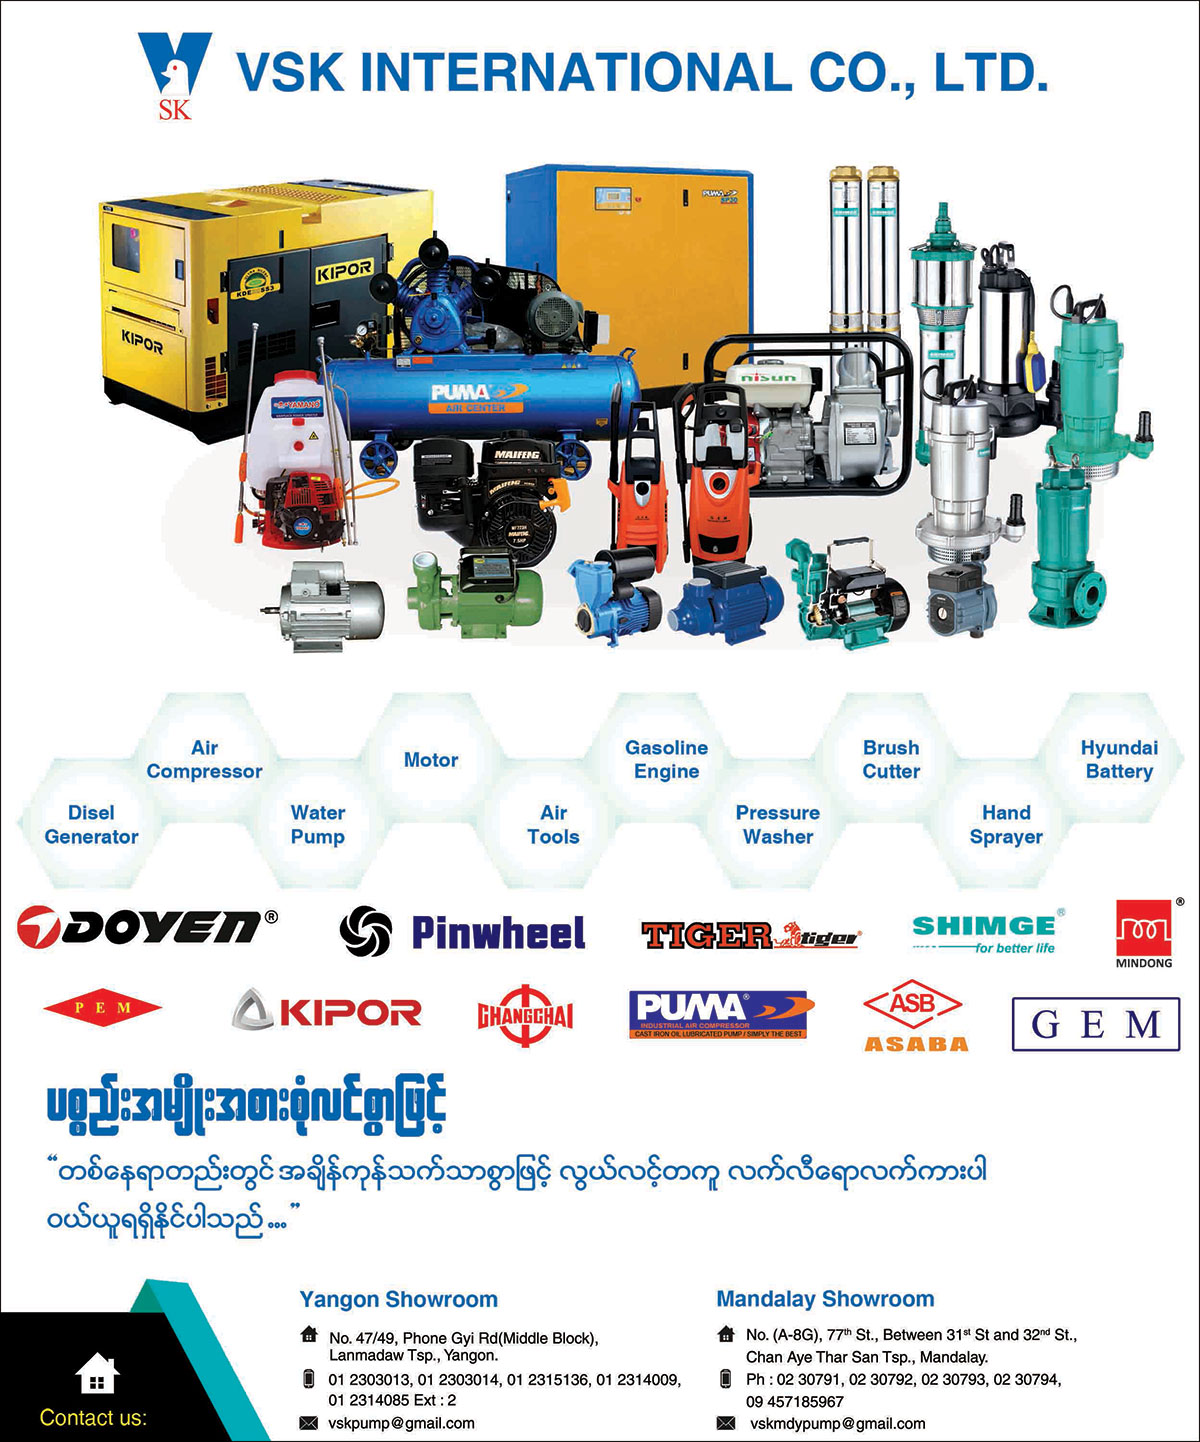 2018/Yangon/MBDL/VSK-Co-Ltd_Pumps-&-Accessories_922.jpg